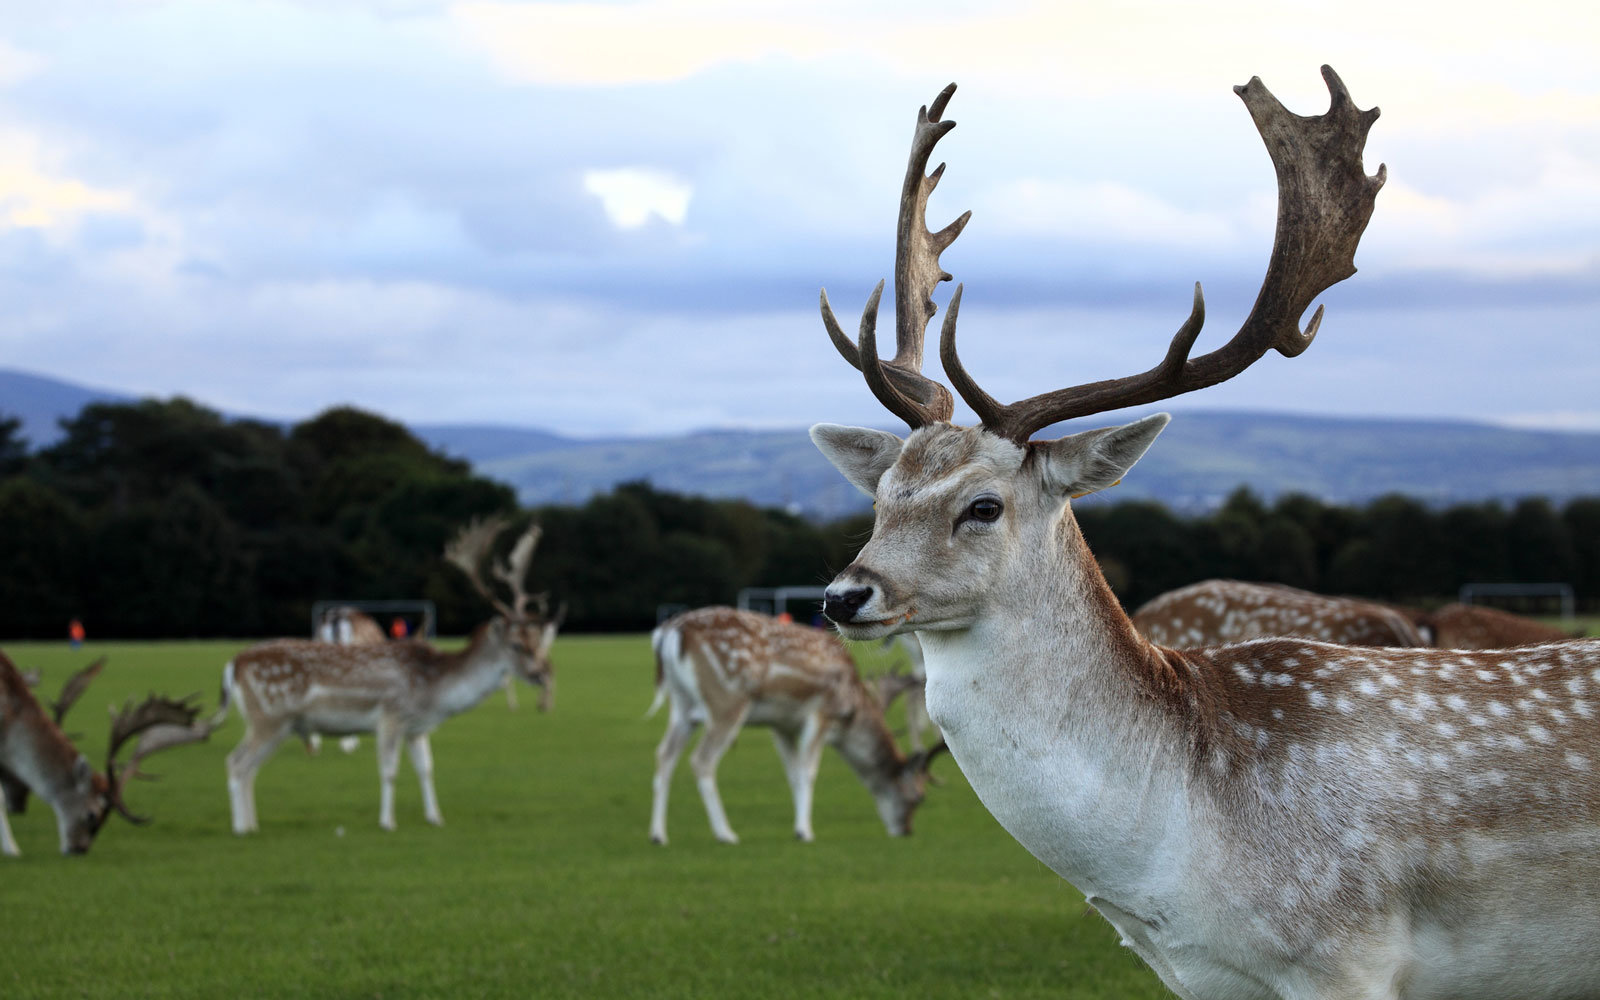 A deer tackled a triathlete in Dublin.